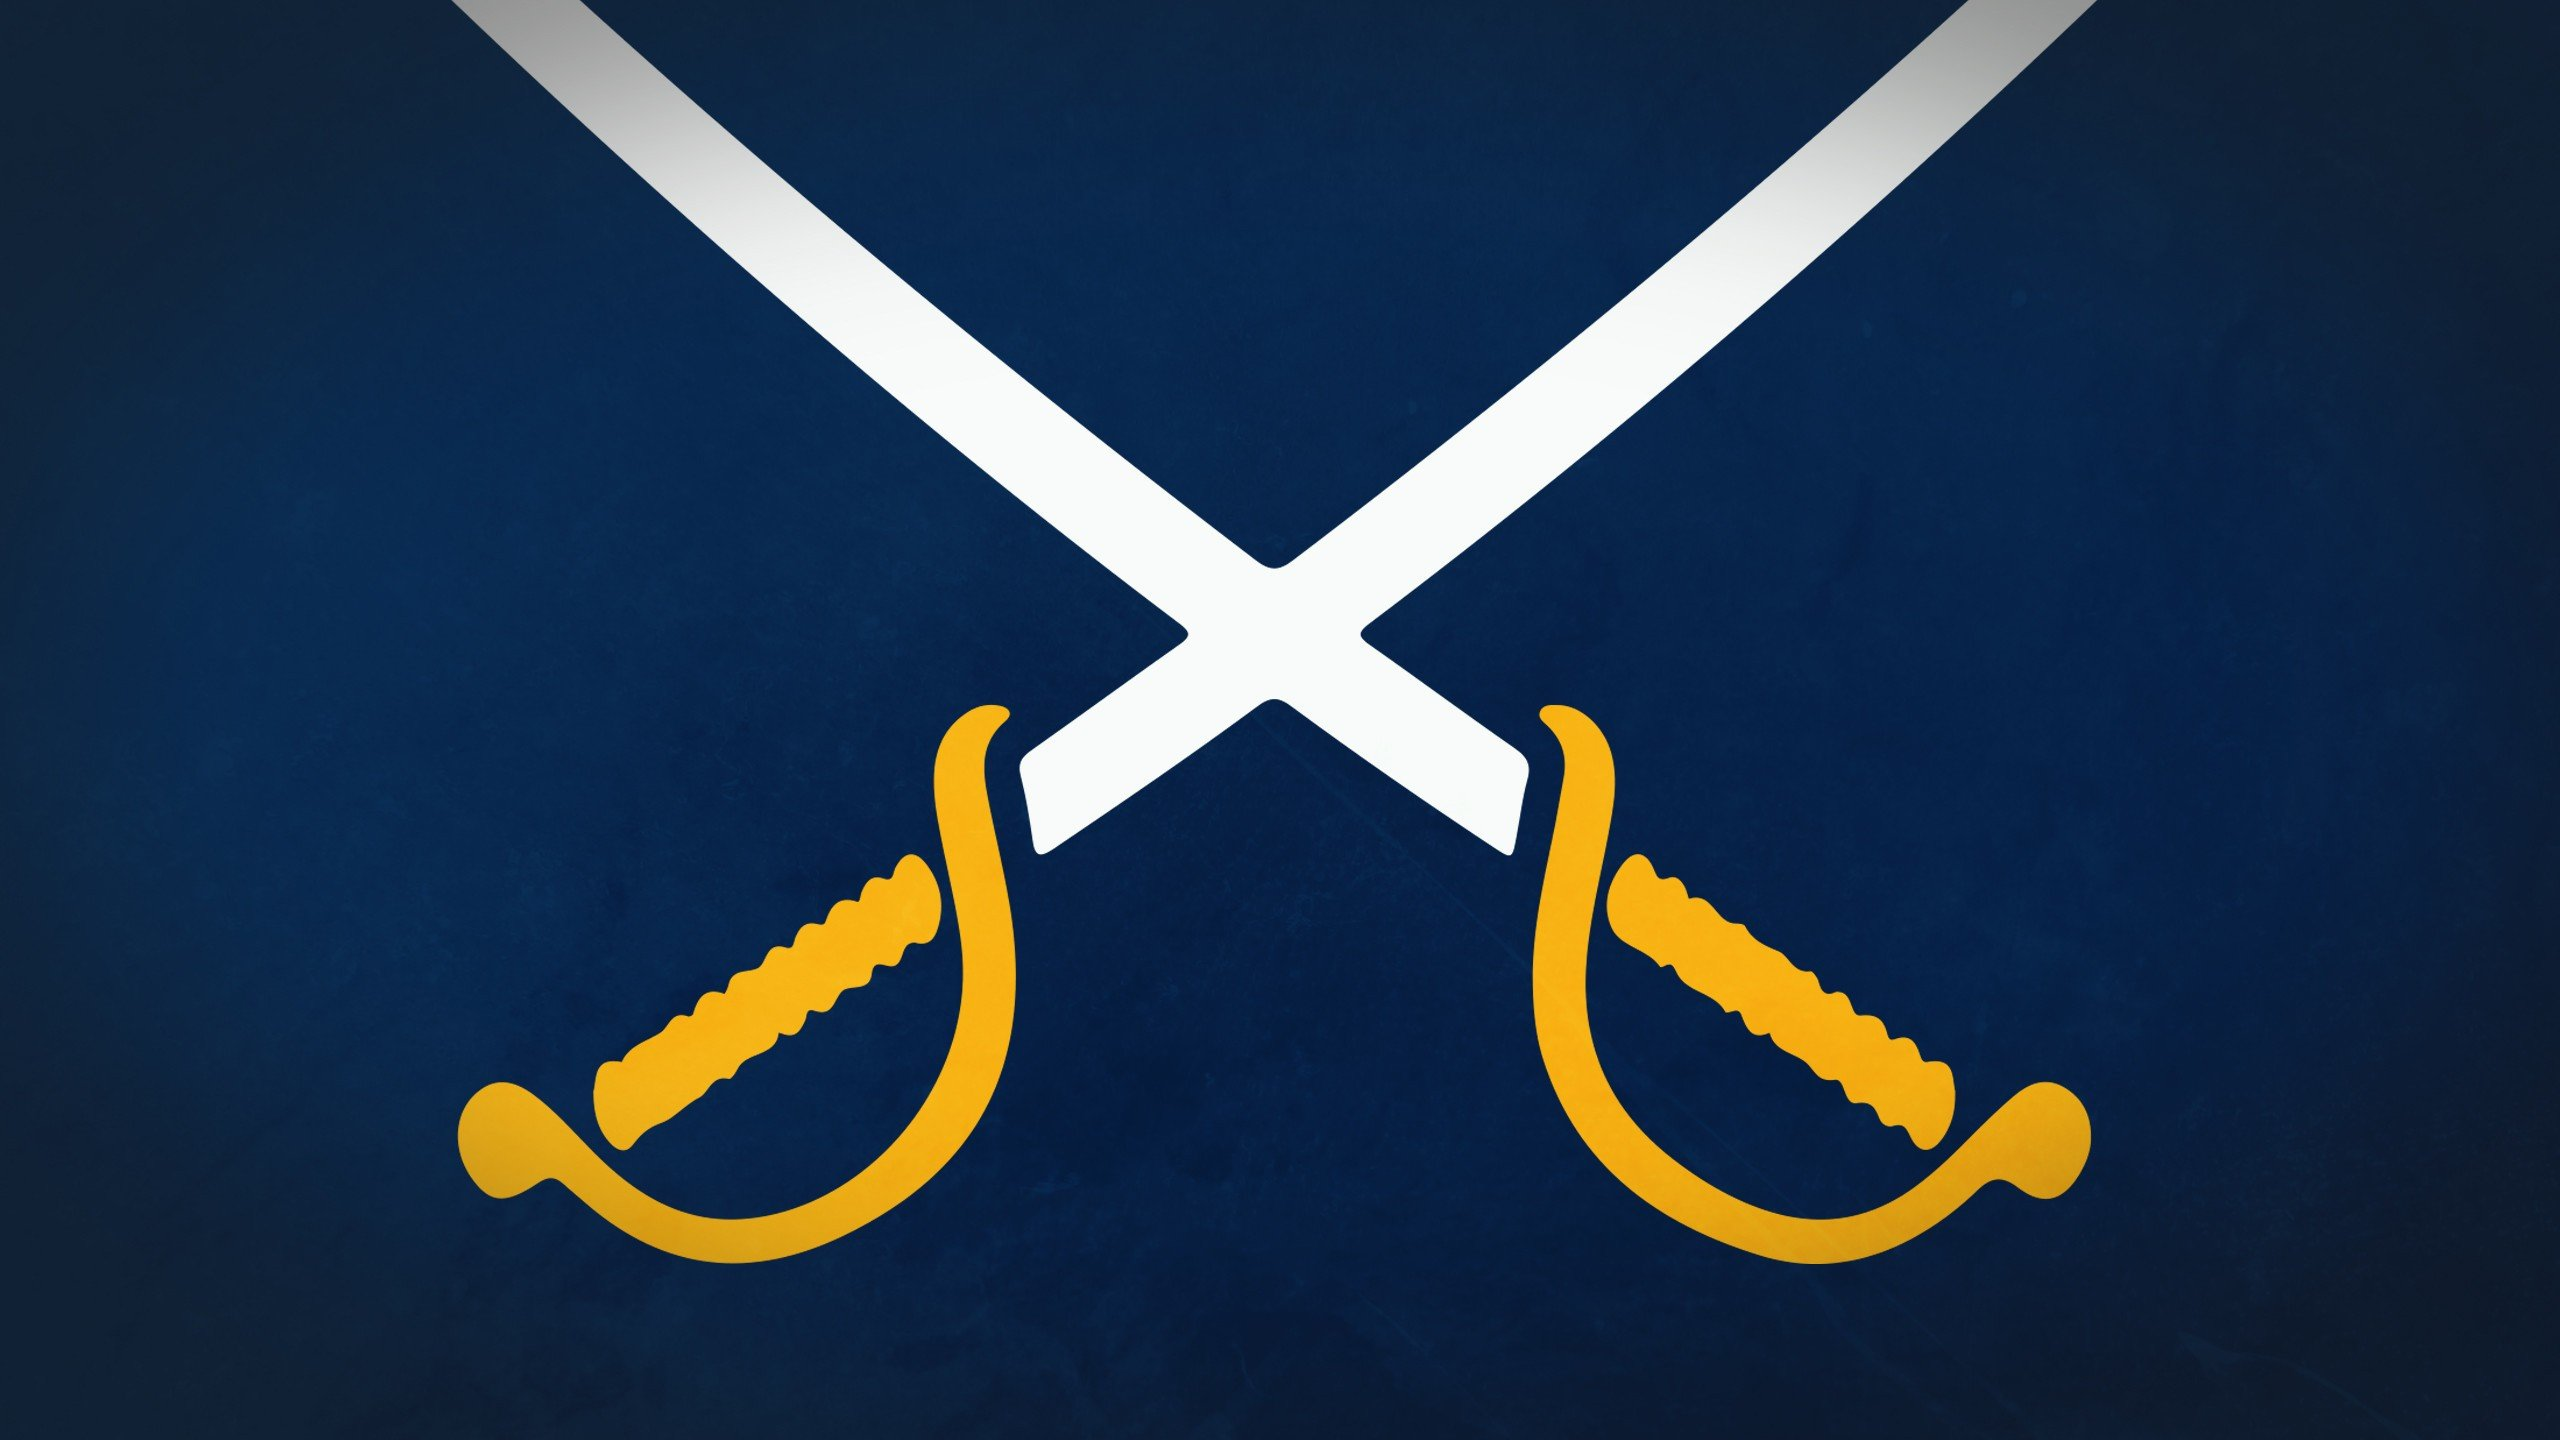 Free download Buffalo Sabres background ID:205941 hd 2560x1440 for computer